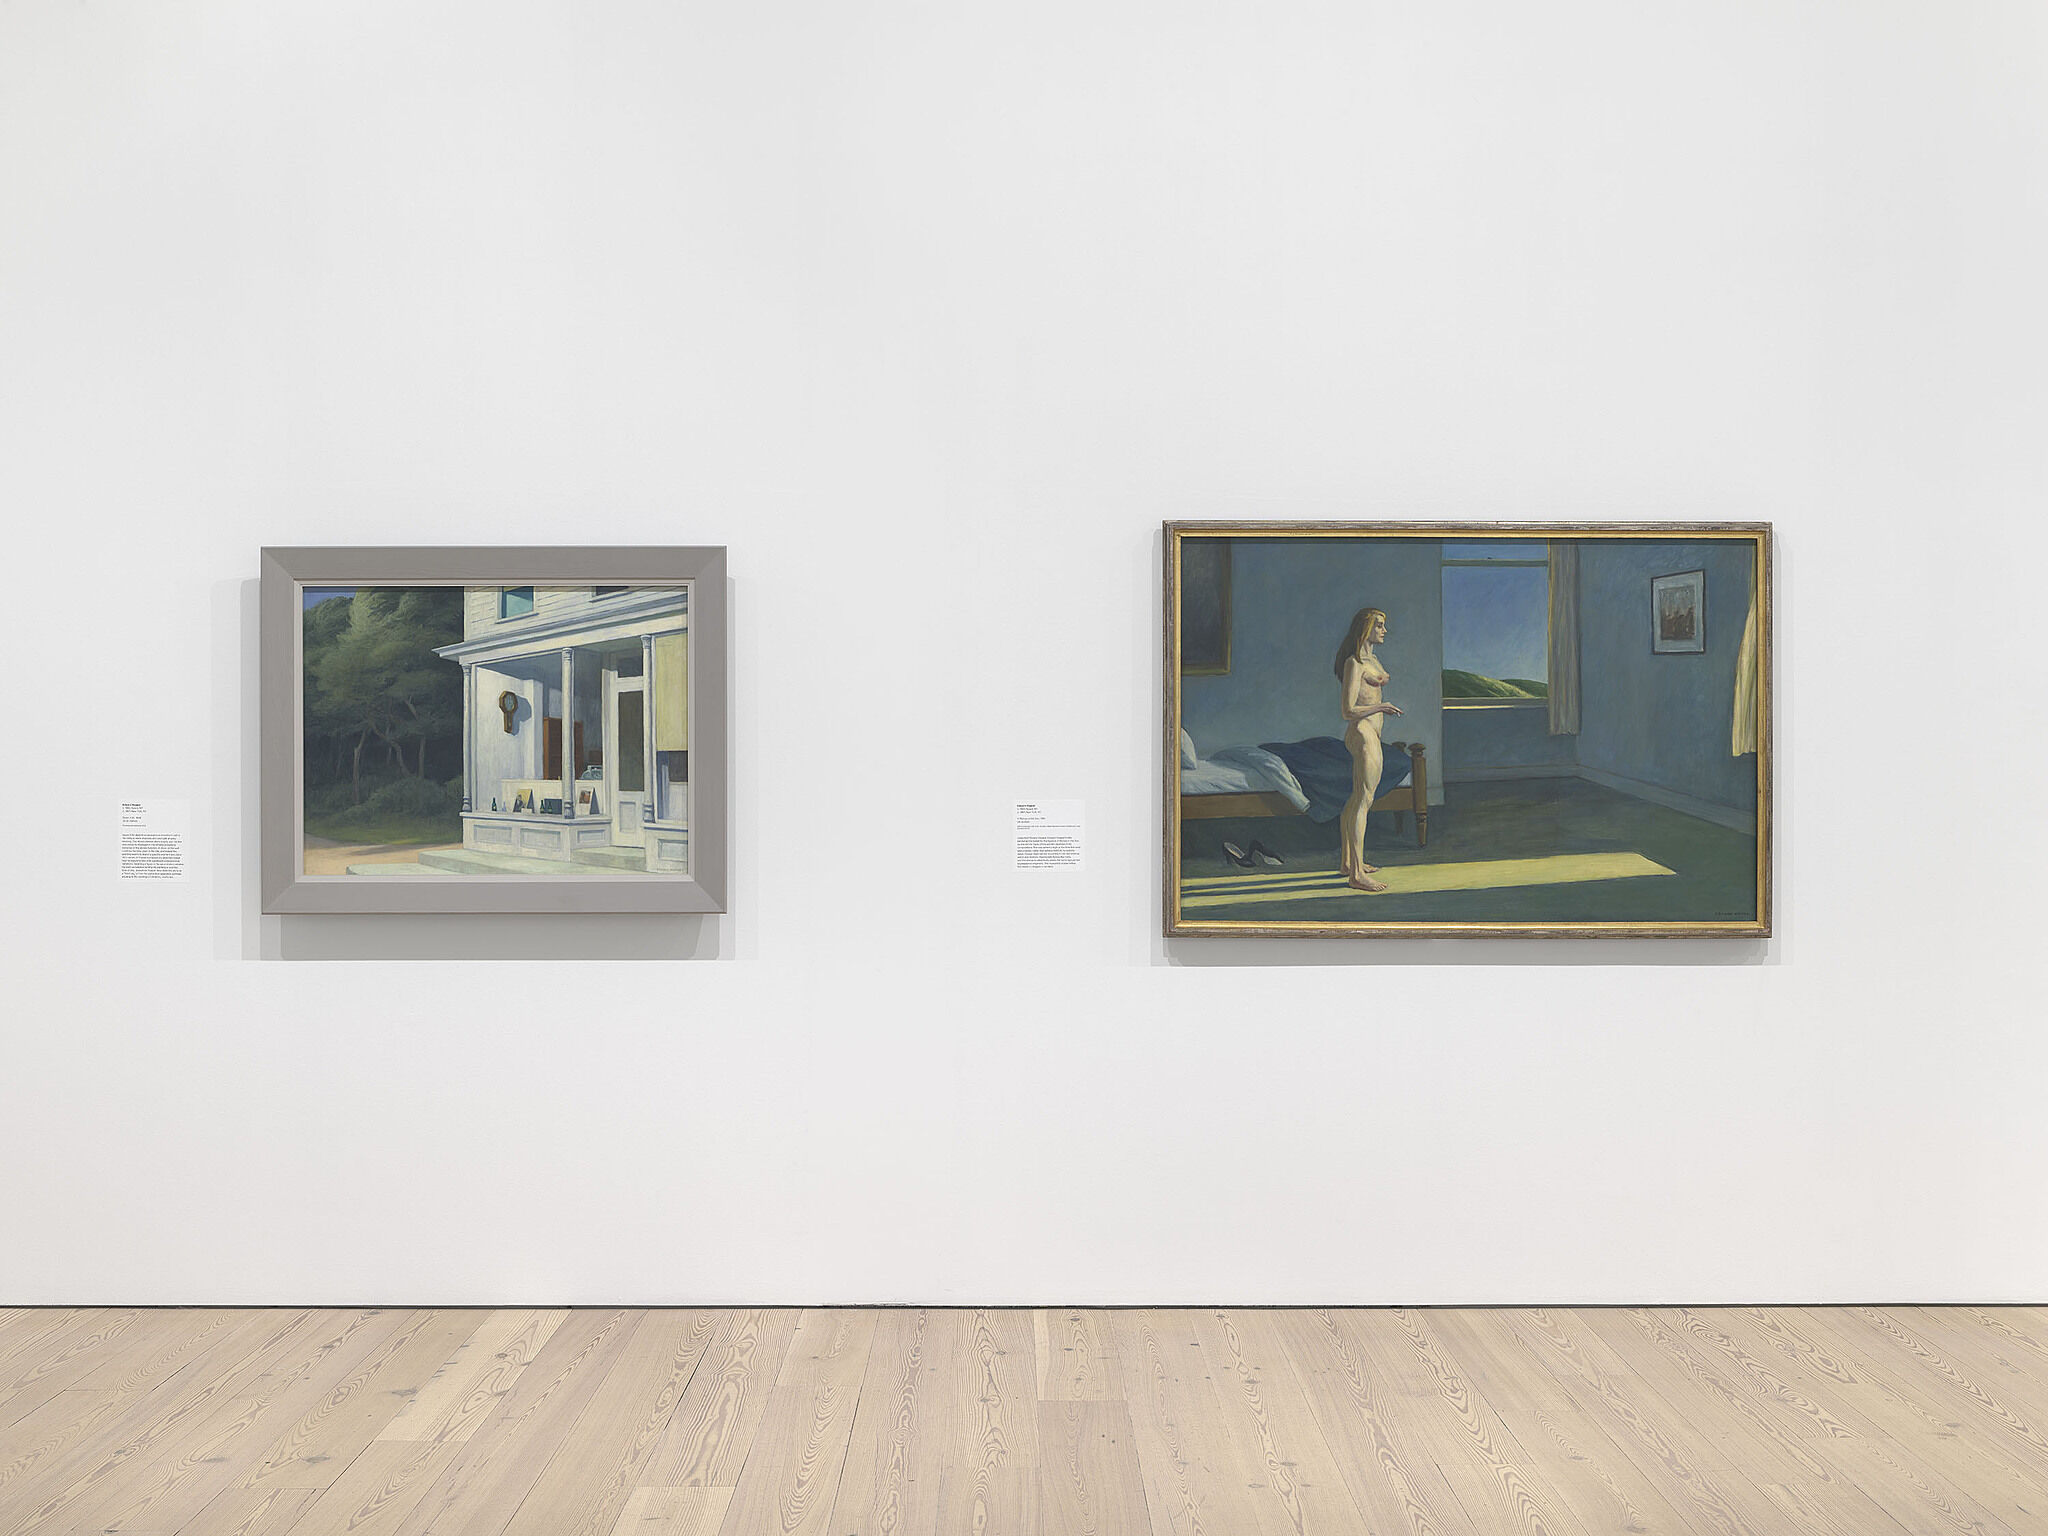 An image of the Whitney galleries with two paintings on the wall